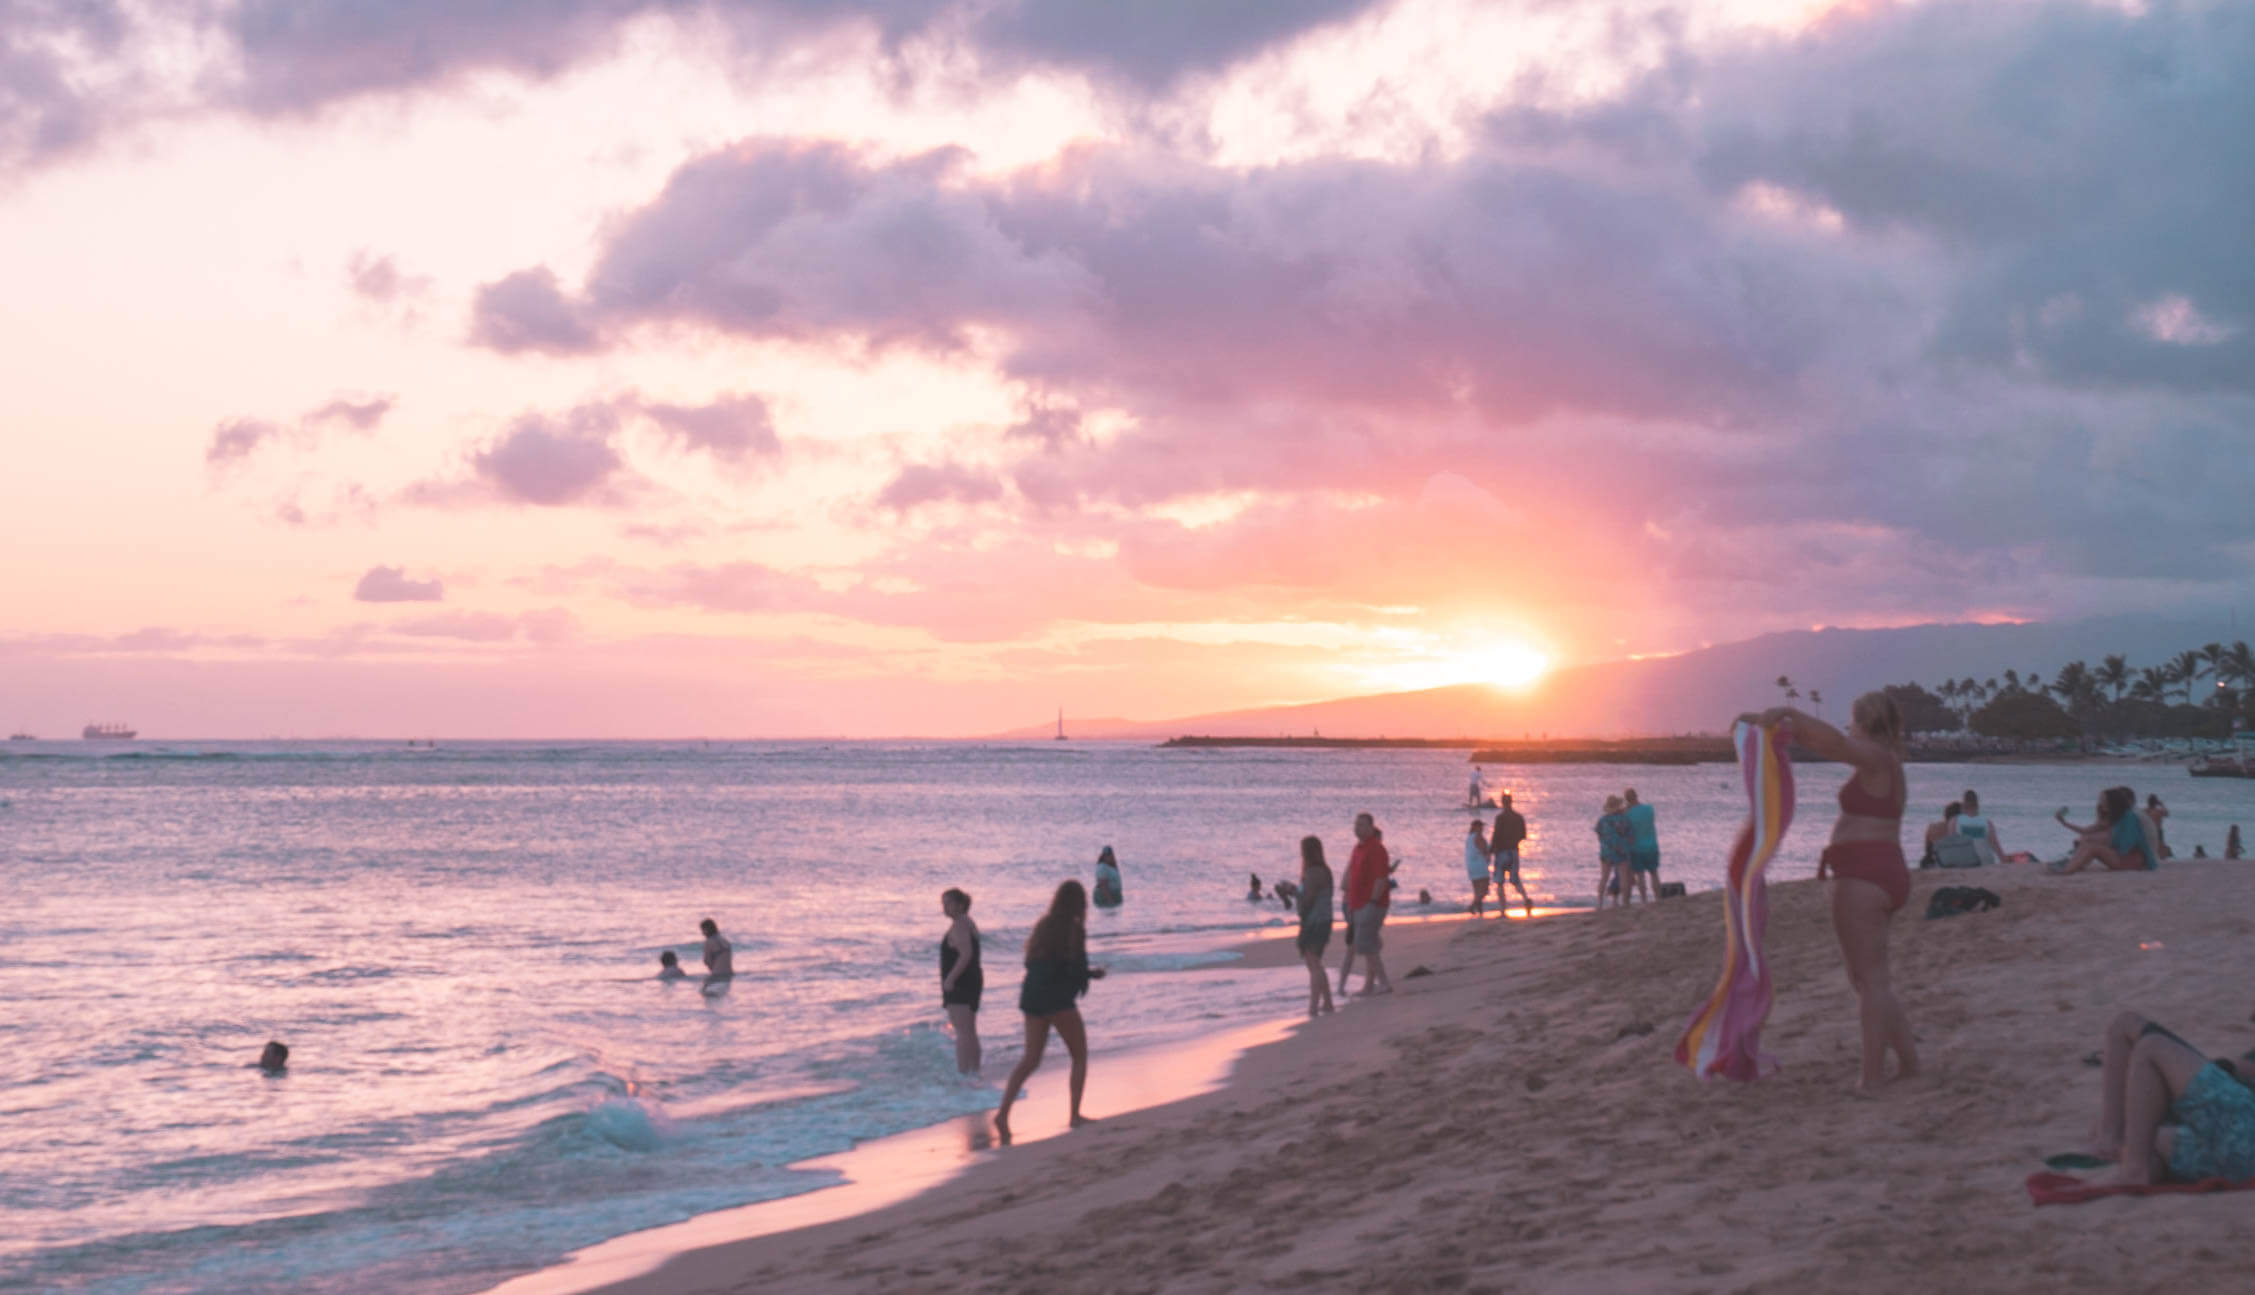 Sunset in Waikiki Beach